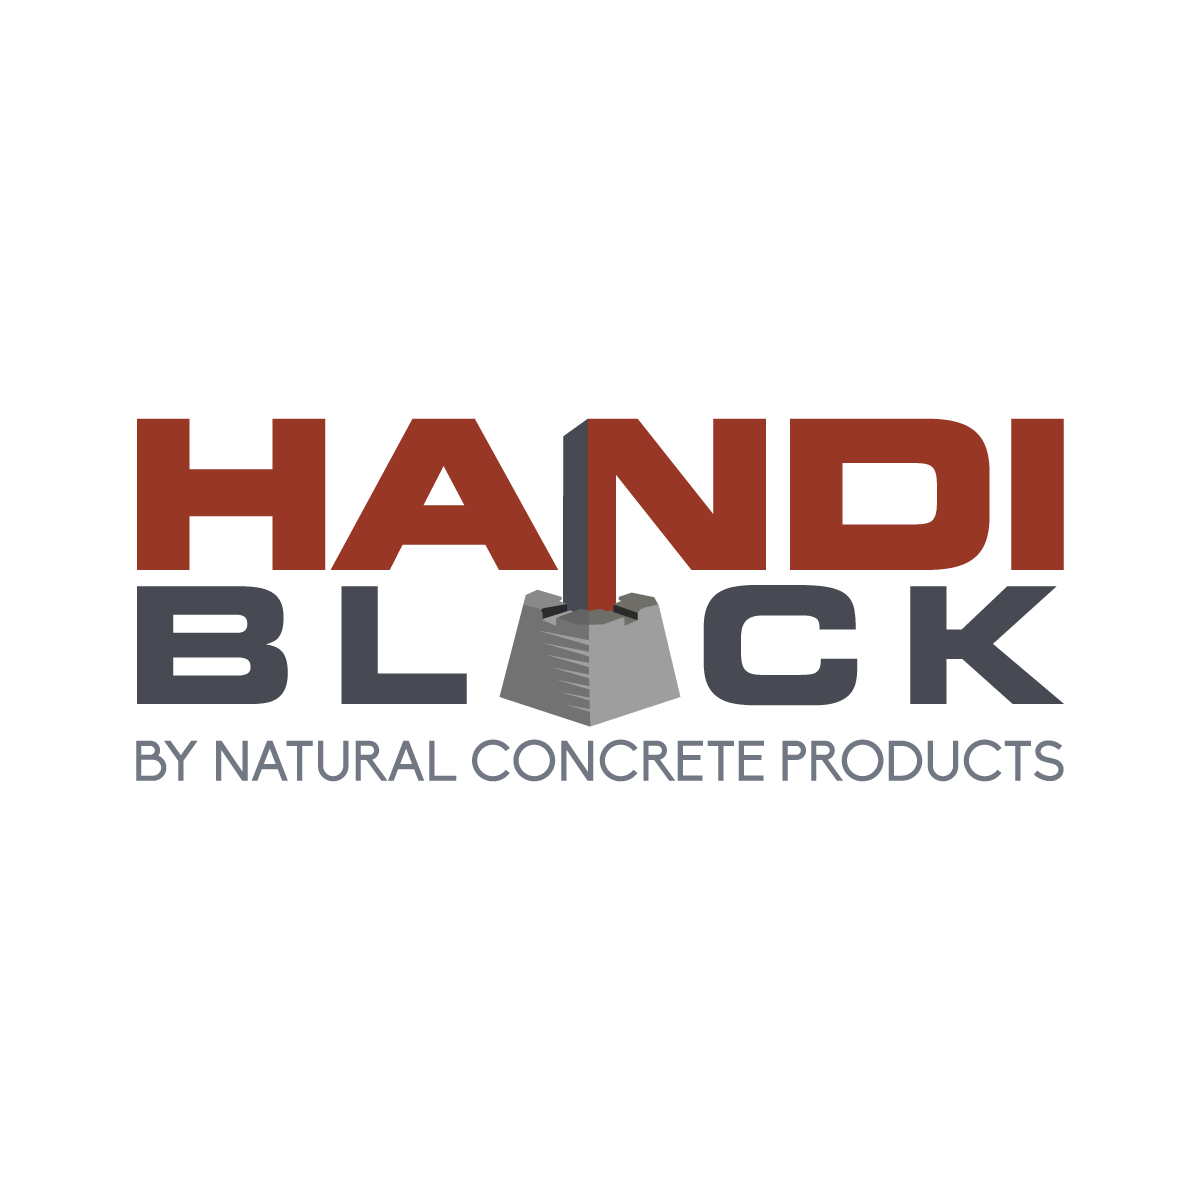 Don't be a blockhead...we need a logo for a concrete block.  Please.